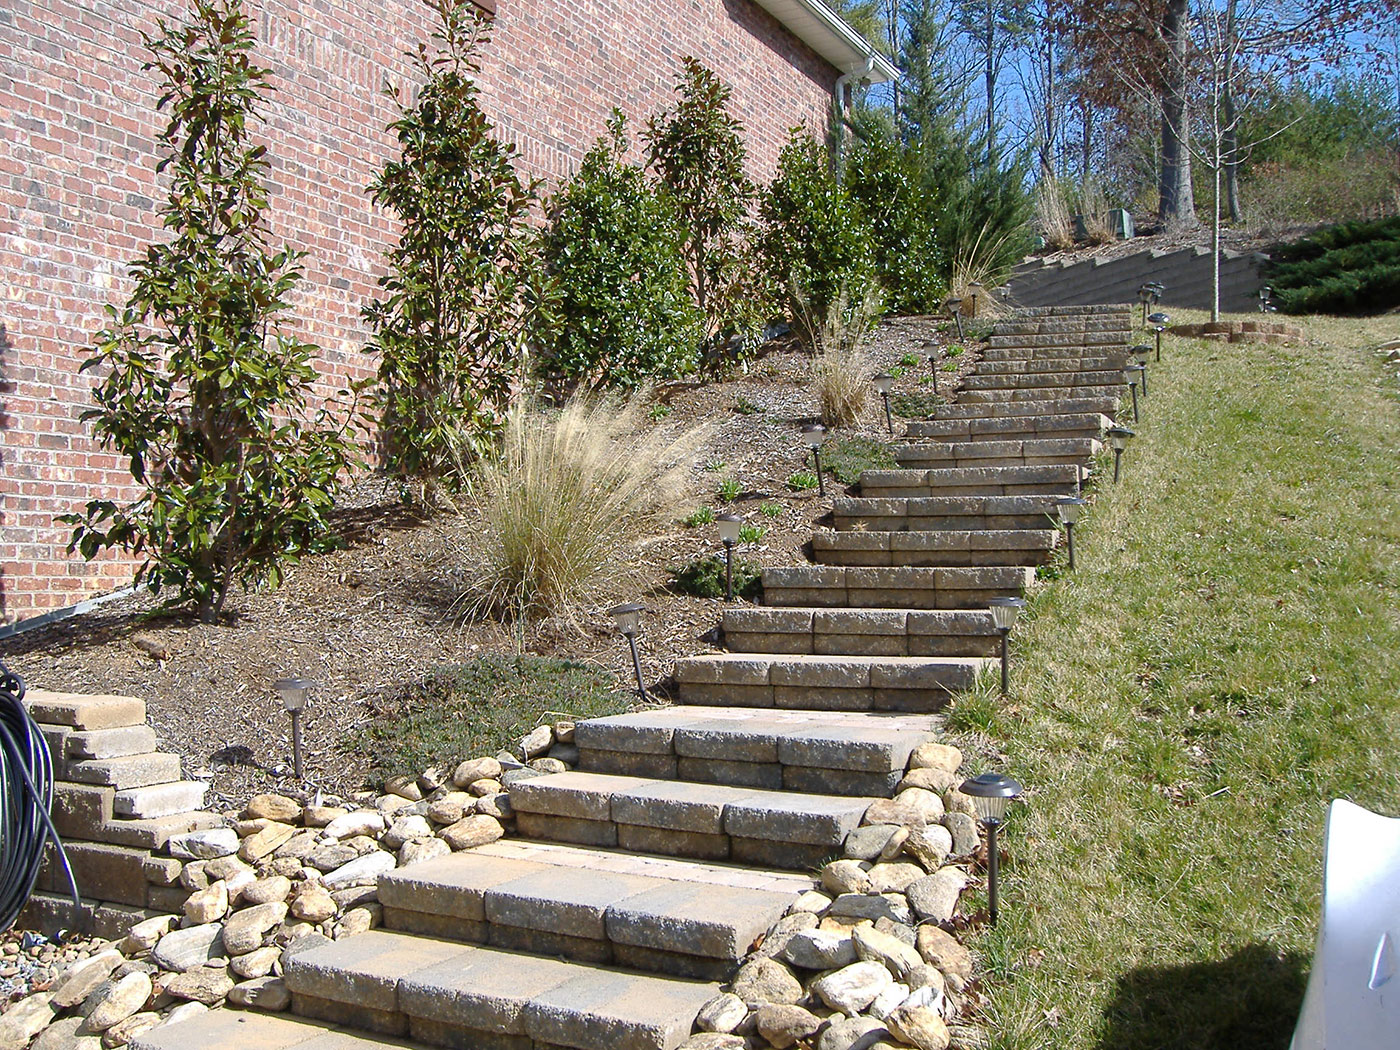 Campbell steps